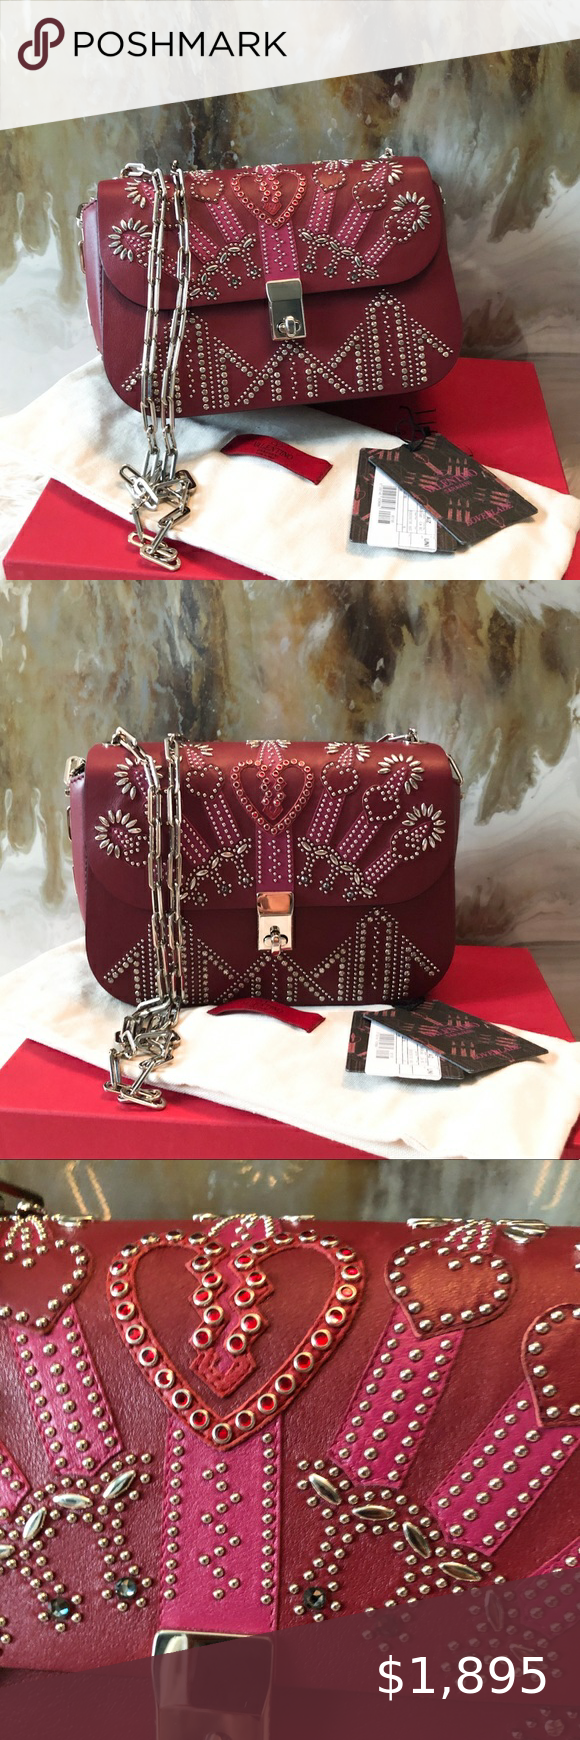 Valentino Love Blade Maroon Crystal Studded Bag In 2020